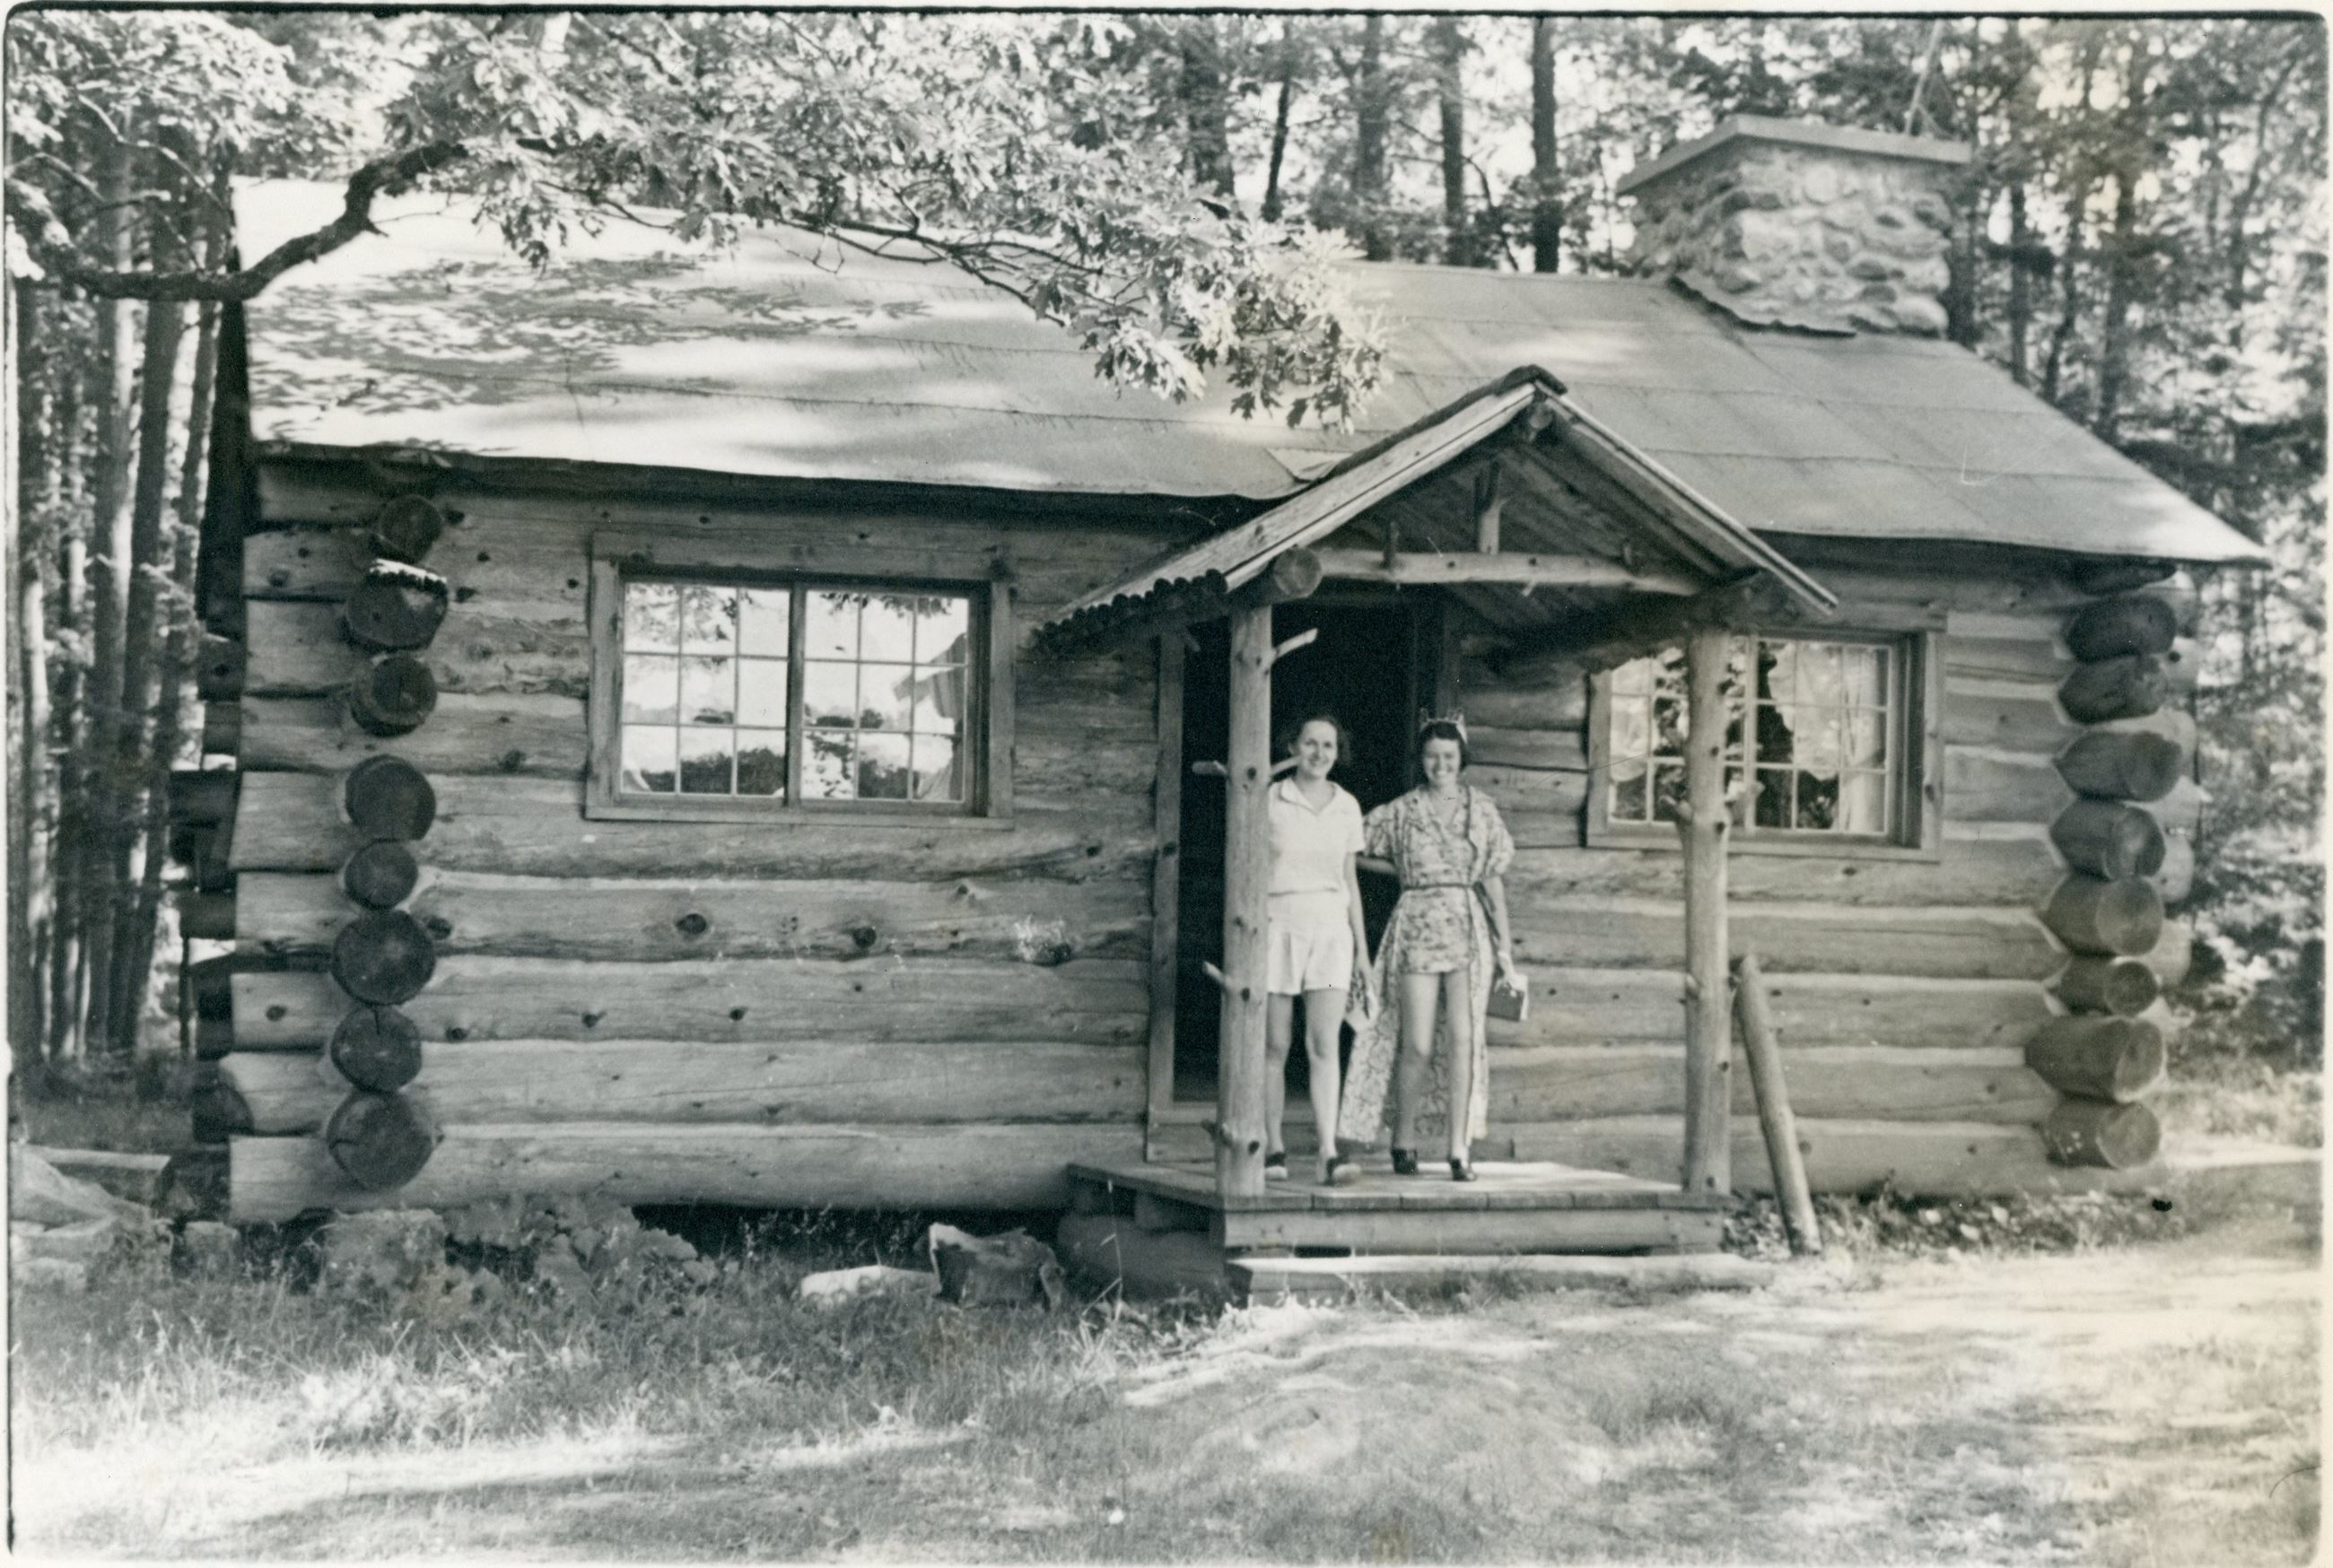 Image of tuberculosis hosptial patients at log cabin, Murray Hill